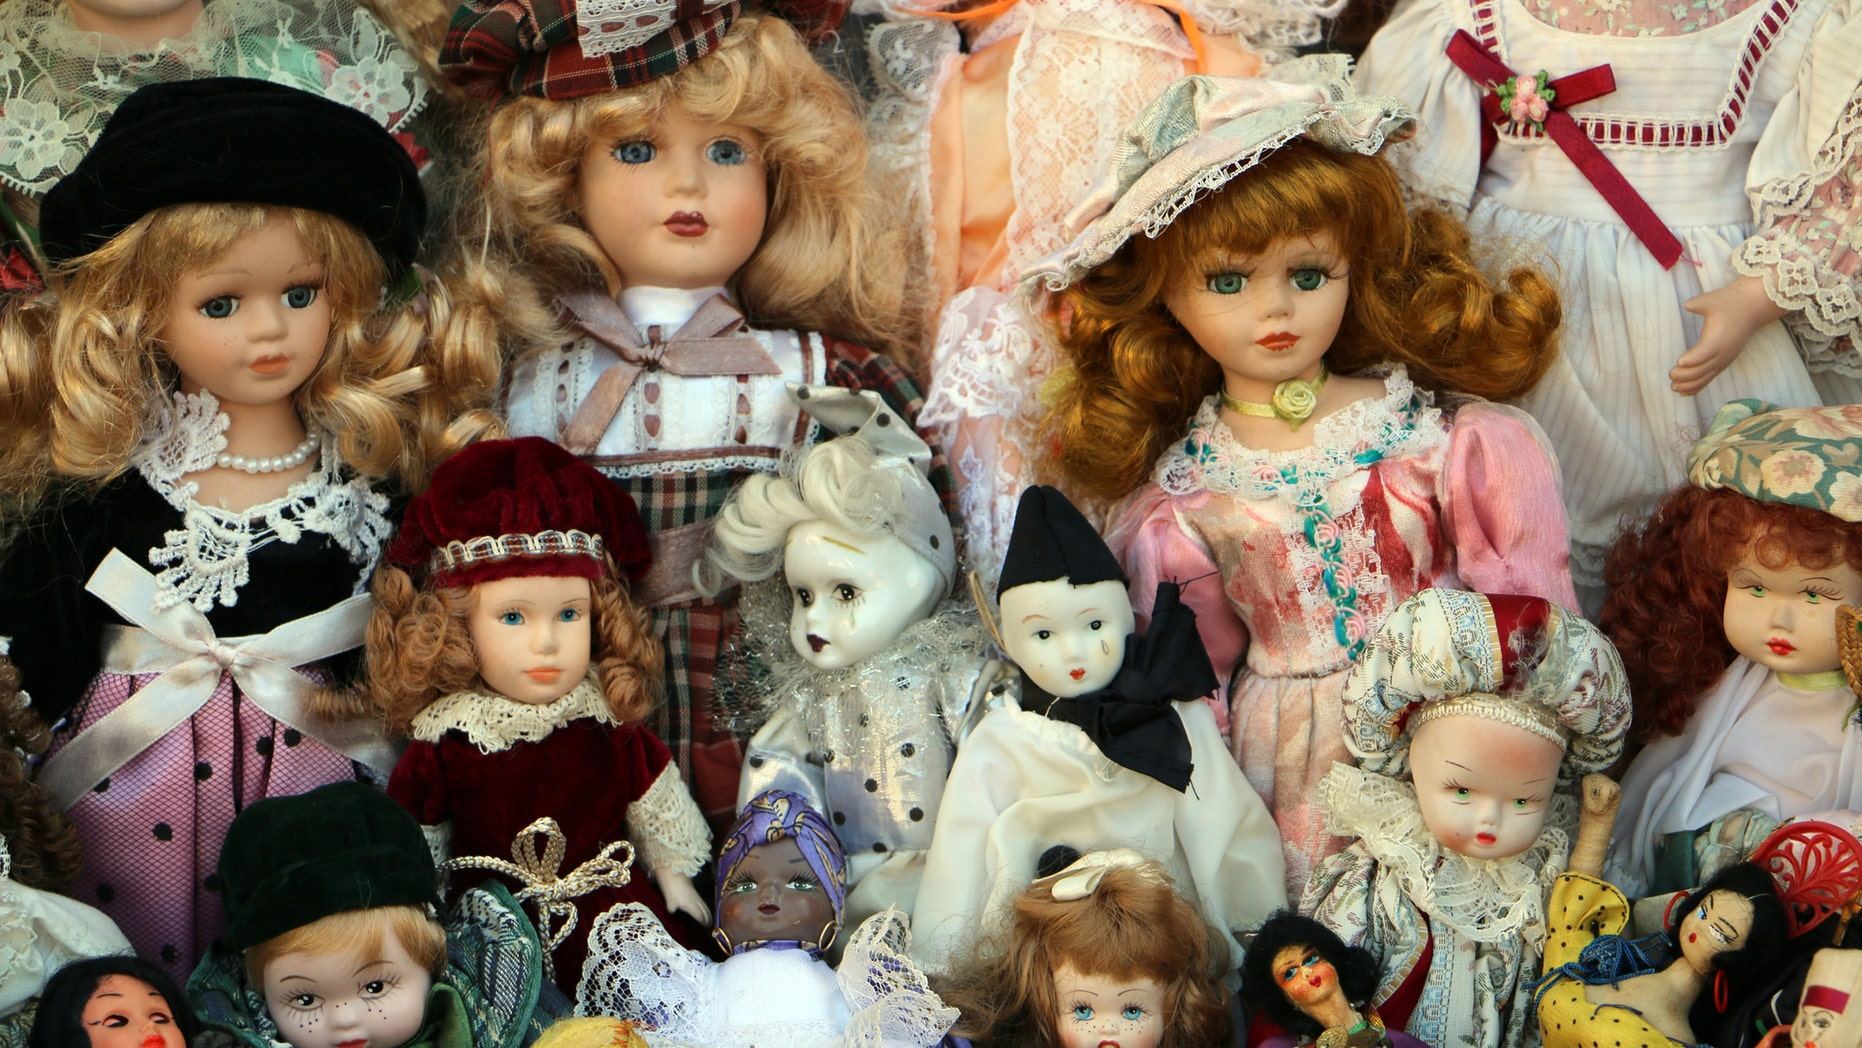 Move your old Victorian doll collection.